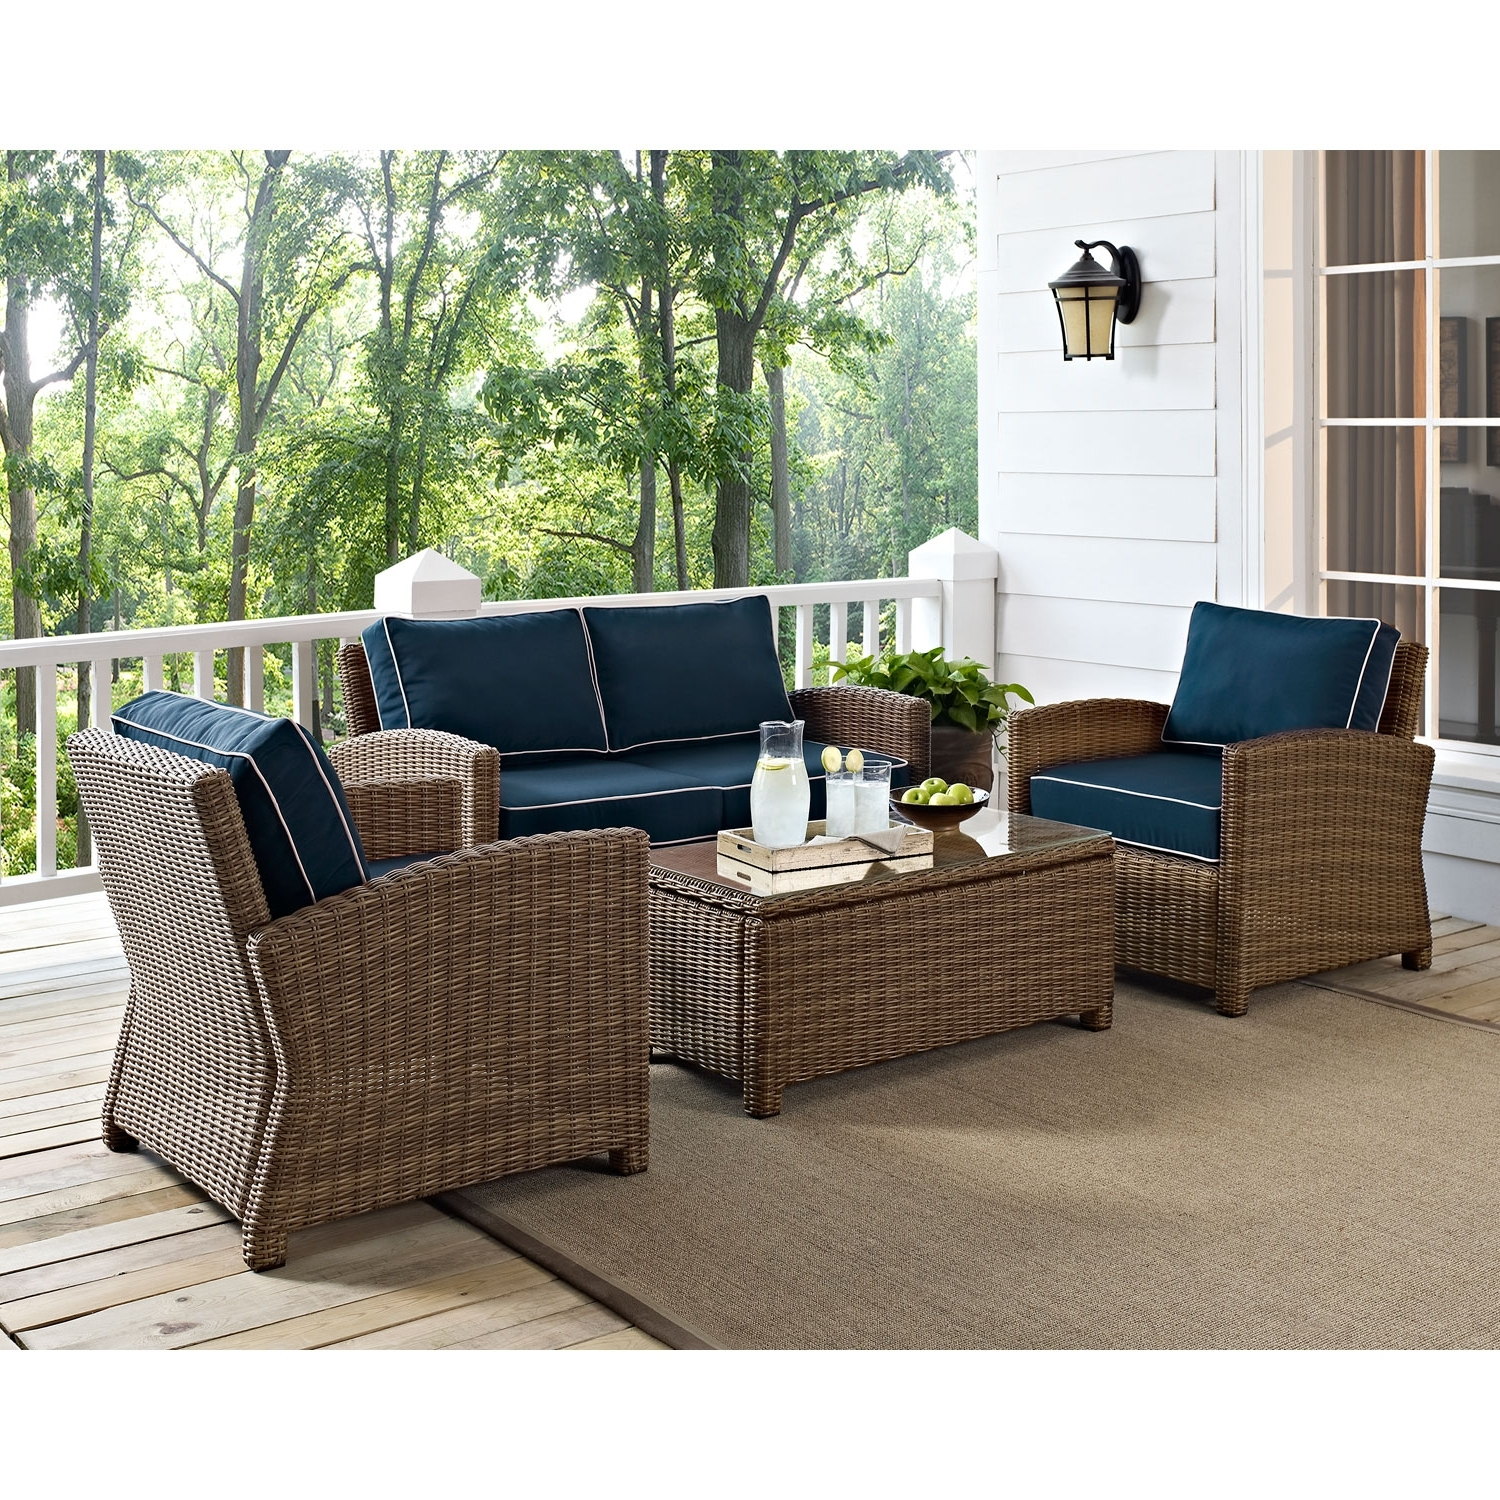 Small Patio Conversation Sets With Regard To Fashionable Patio : Kroger Patio Furniture Kroger Outdoor Furniture (View 4 of 20)